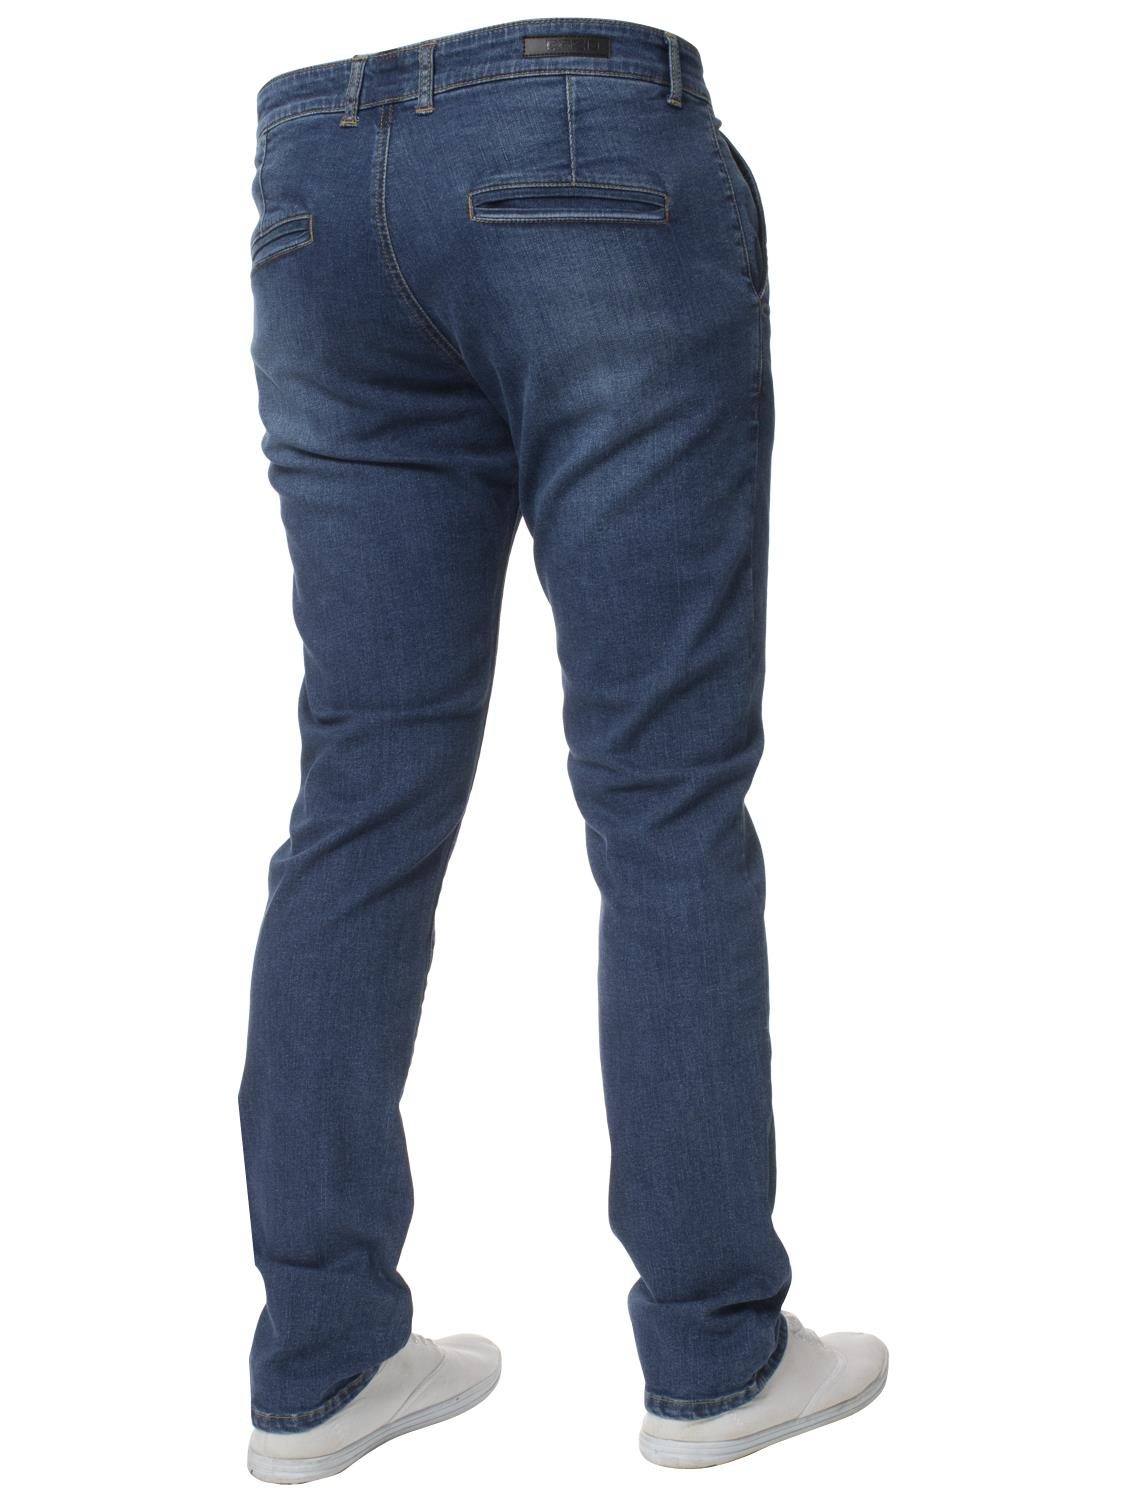 Enzo-Mens-Jeans-Big-Tall-Leg-King-Size-Denim-Pants-Chino-Trousers-Waist-44-034-60-034 miniature 29